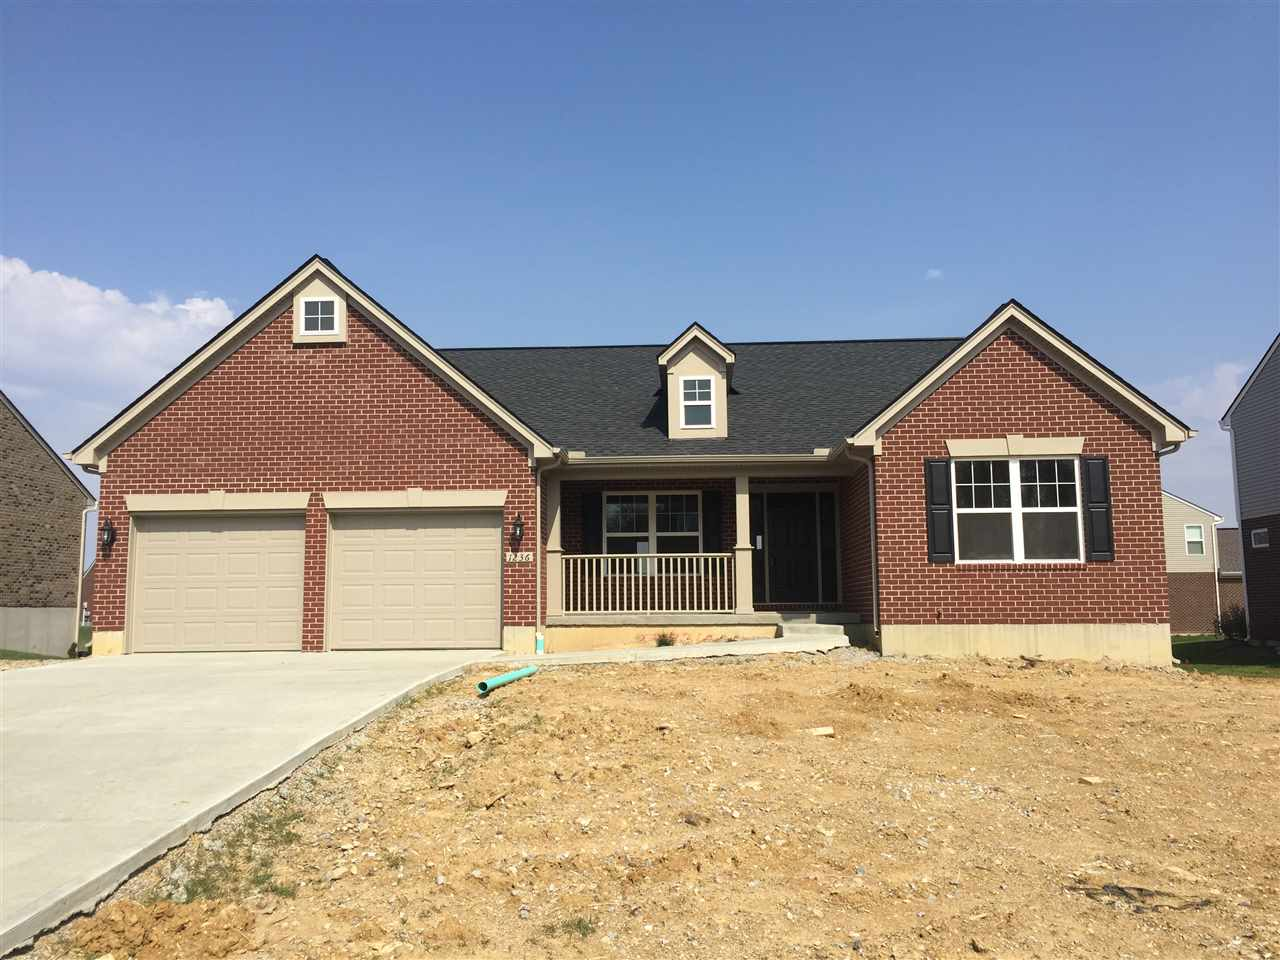 Photo 1 for 1236 Monroe Dr, 368NP Hebron, KY 41048